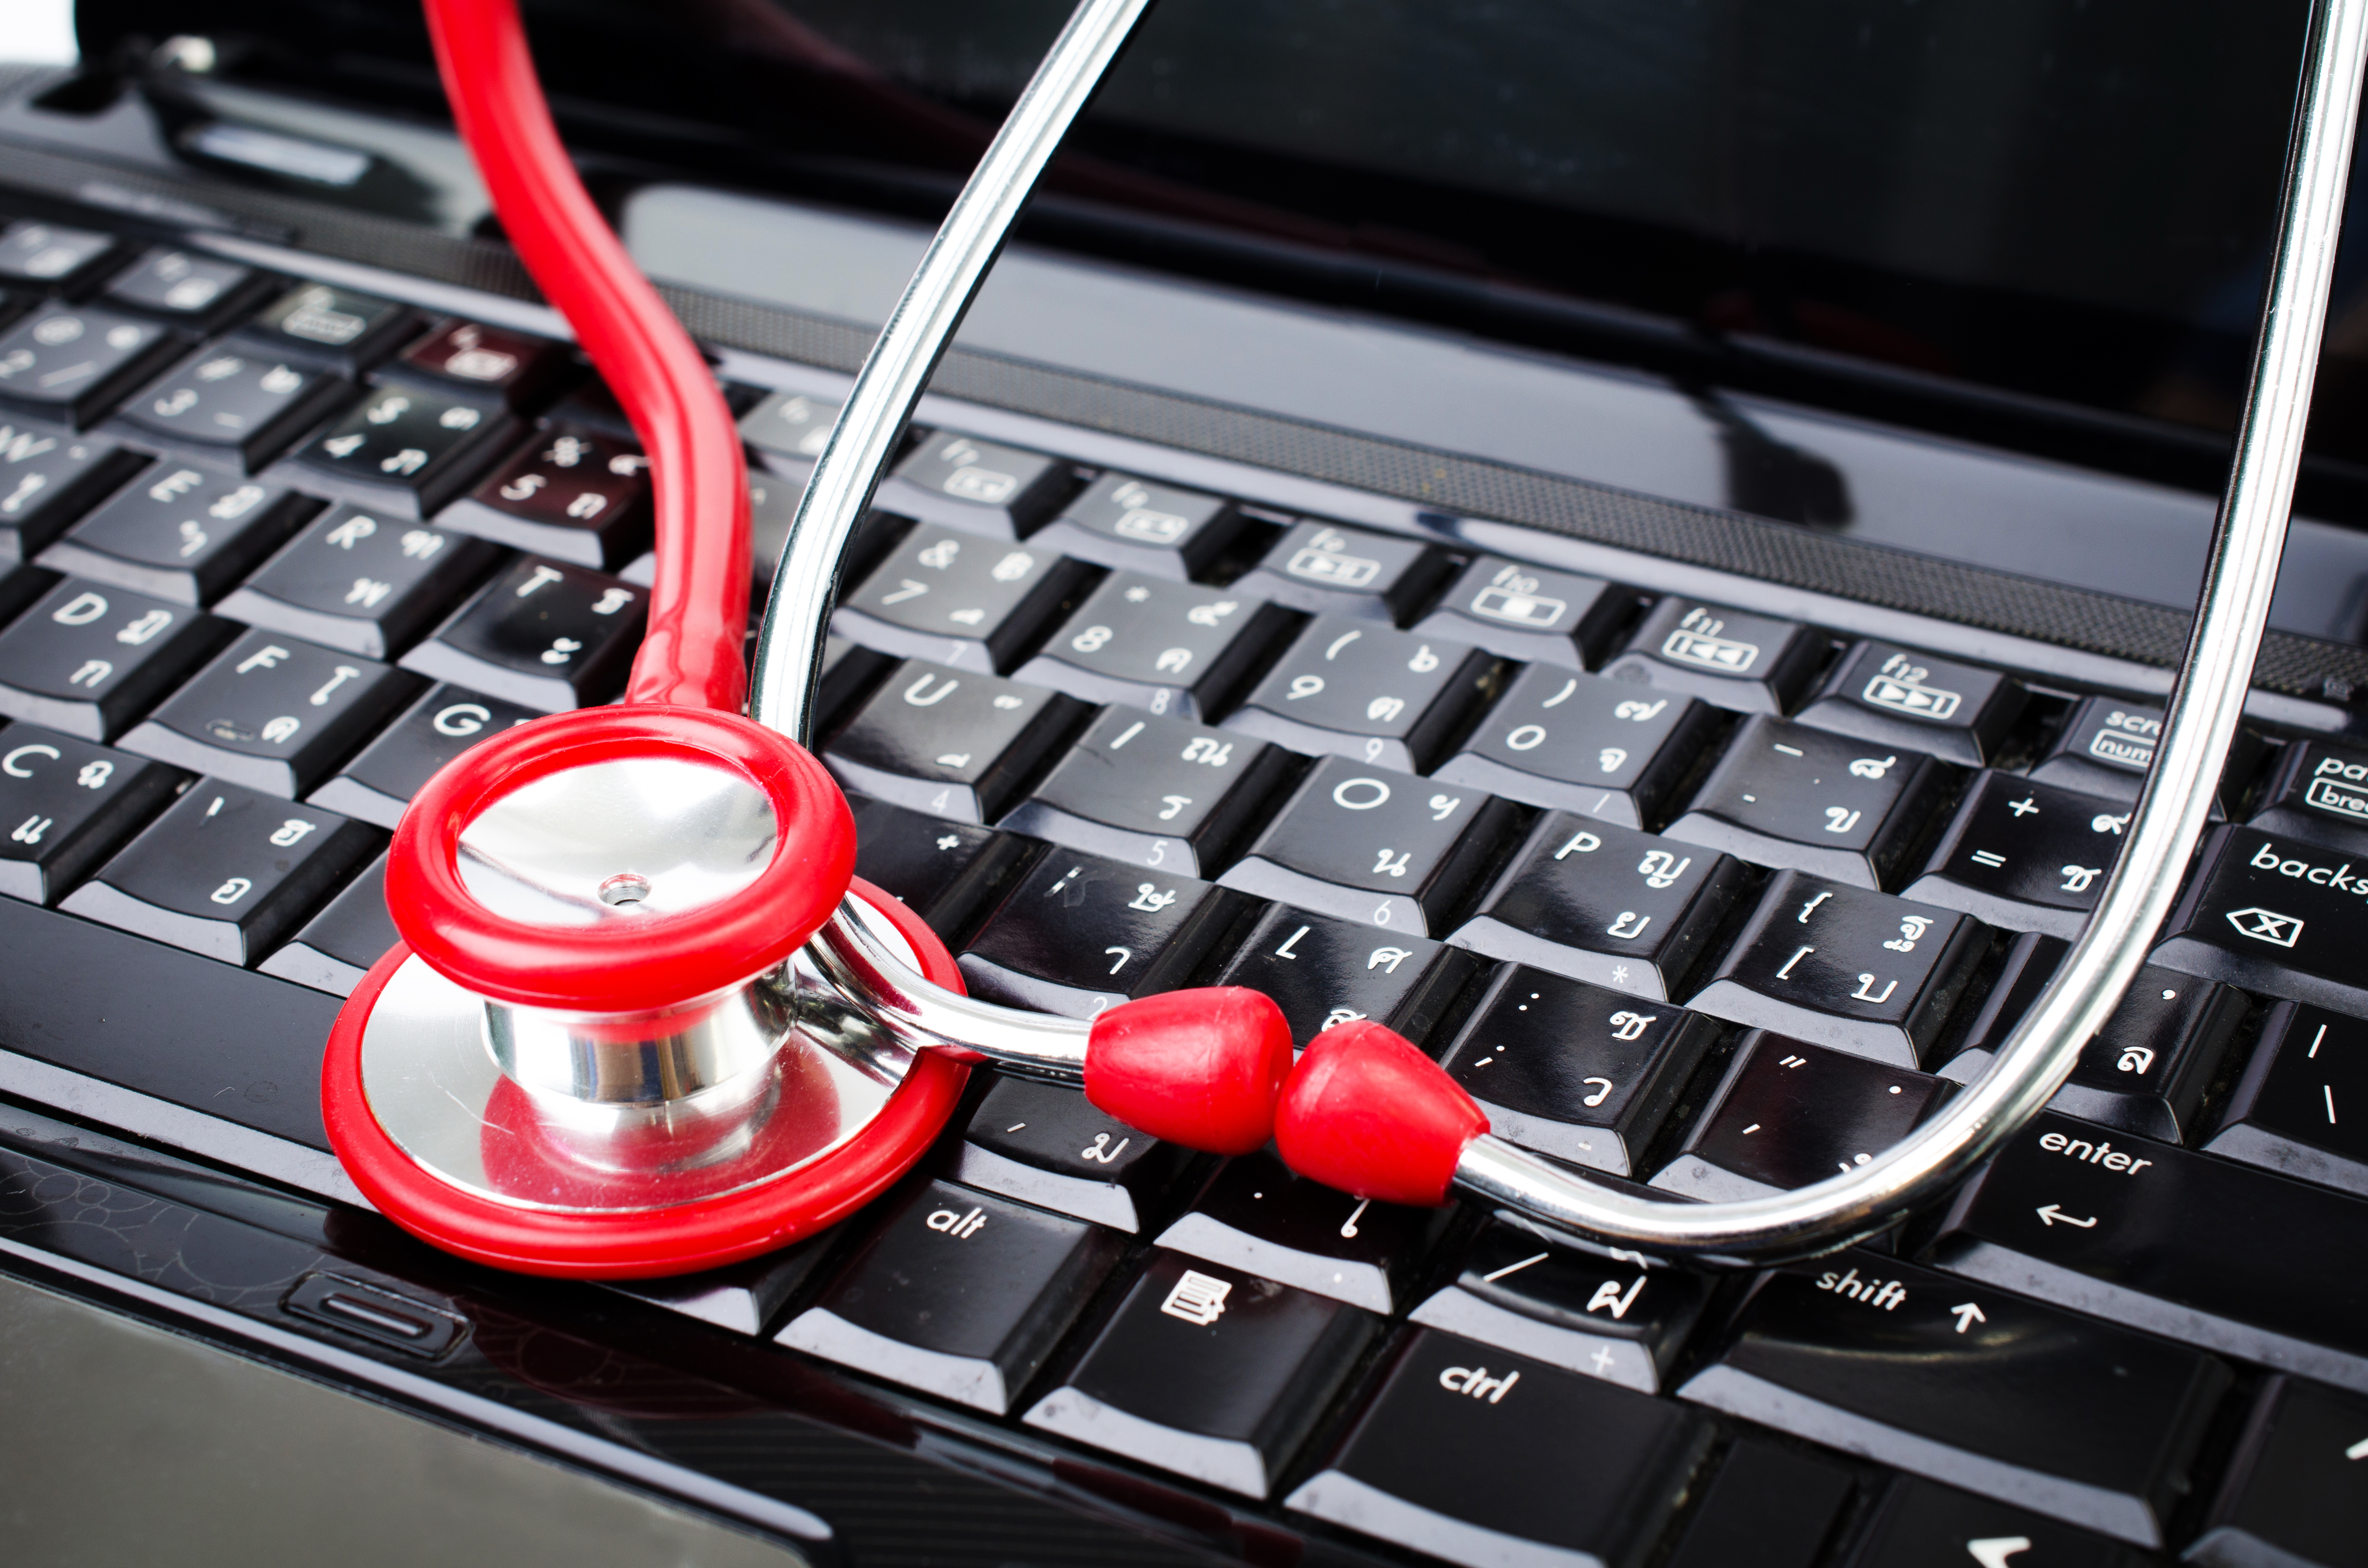 Red Stethoscope on labtop computer keyboard.